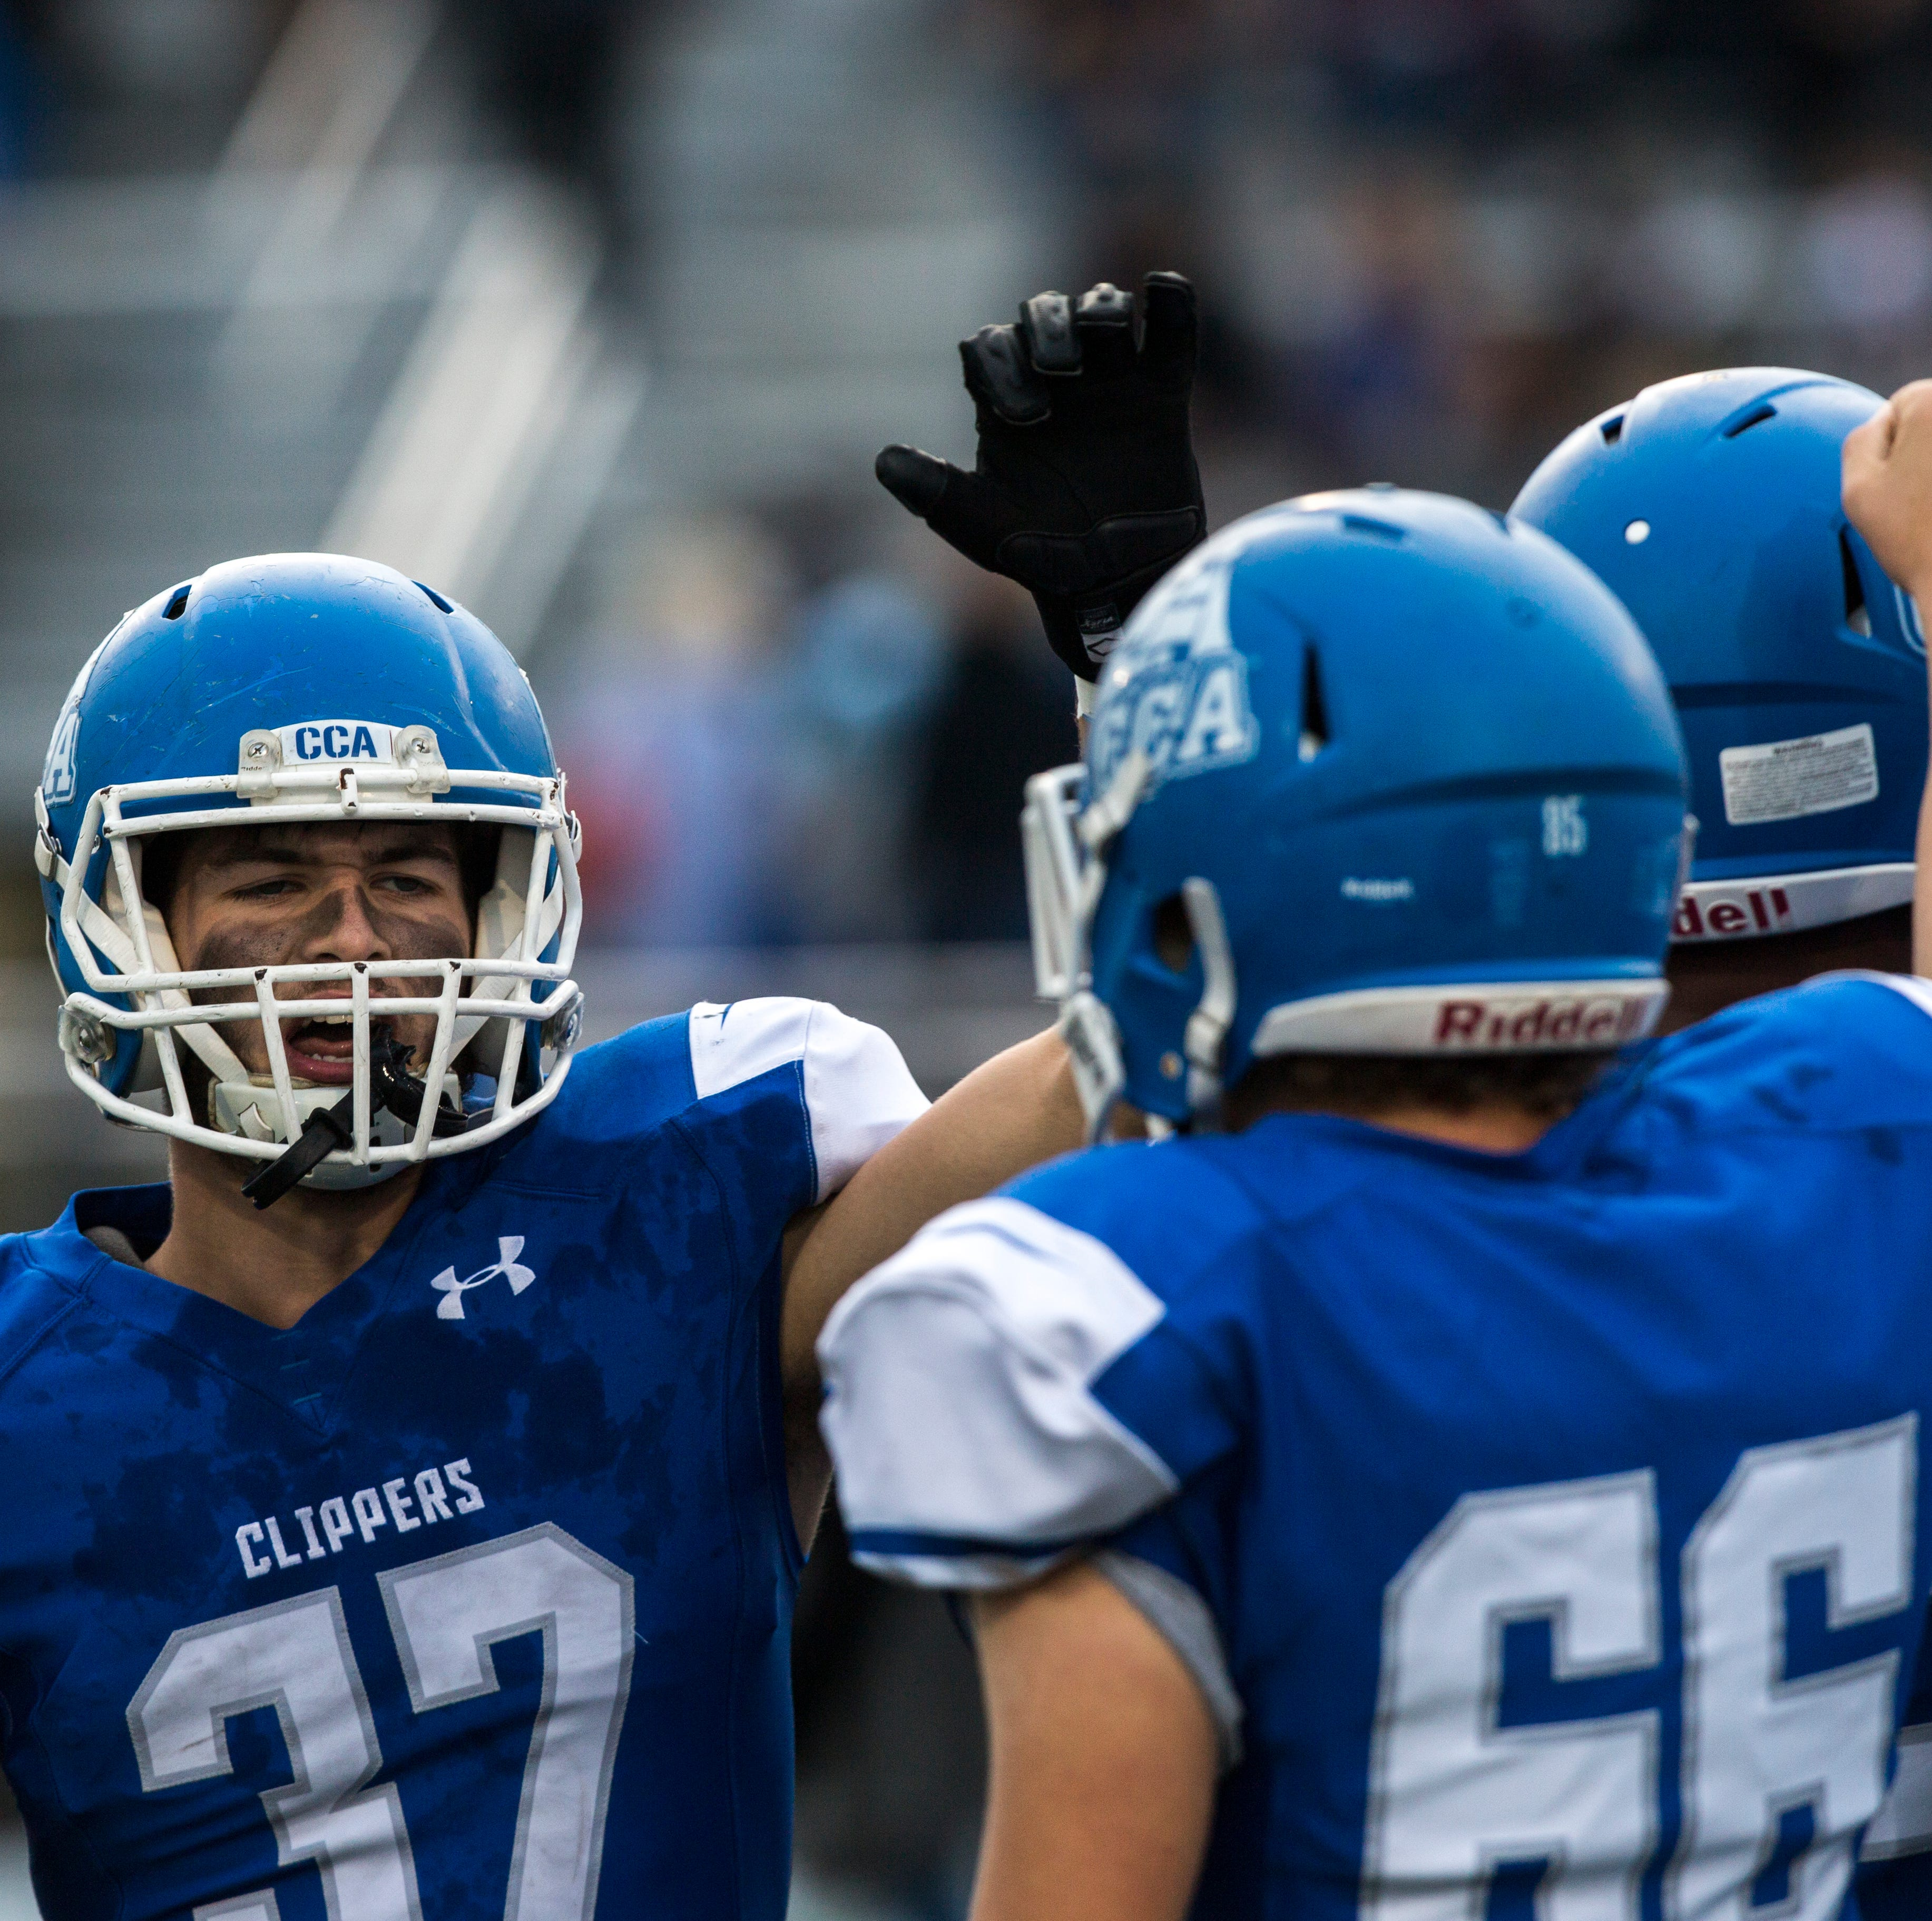 Iowa high school football: What we learned from CCA's rain-shortened win over Davenport Assumption